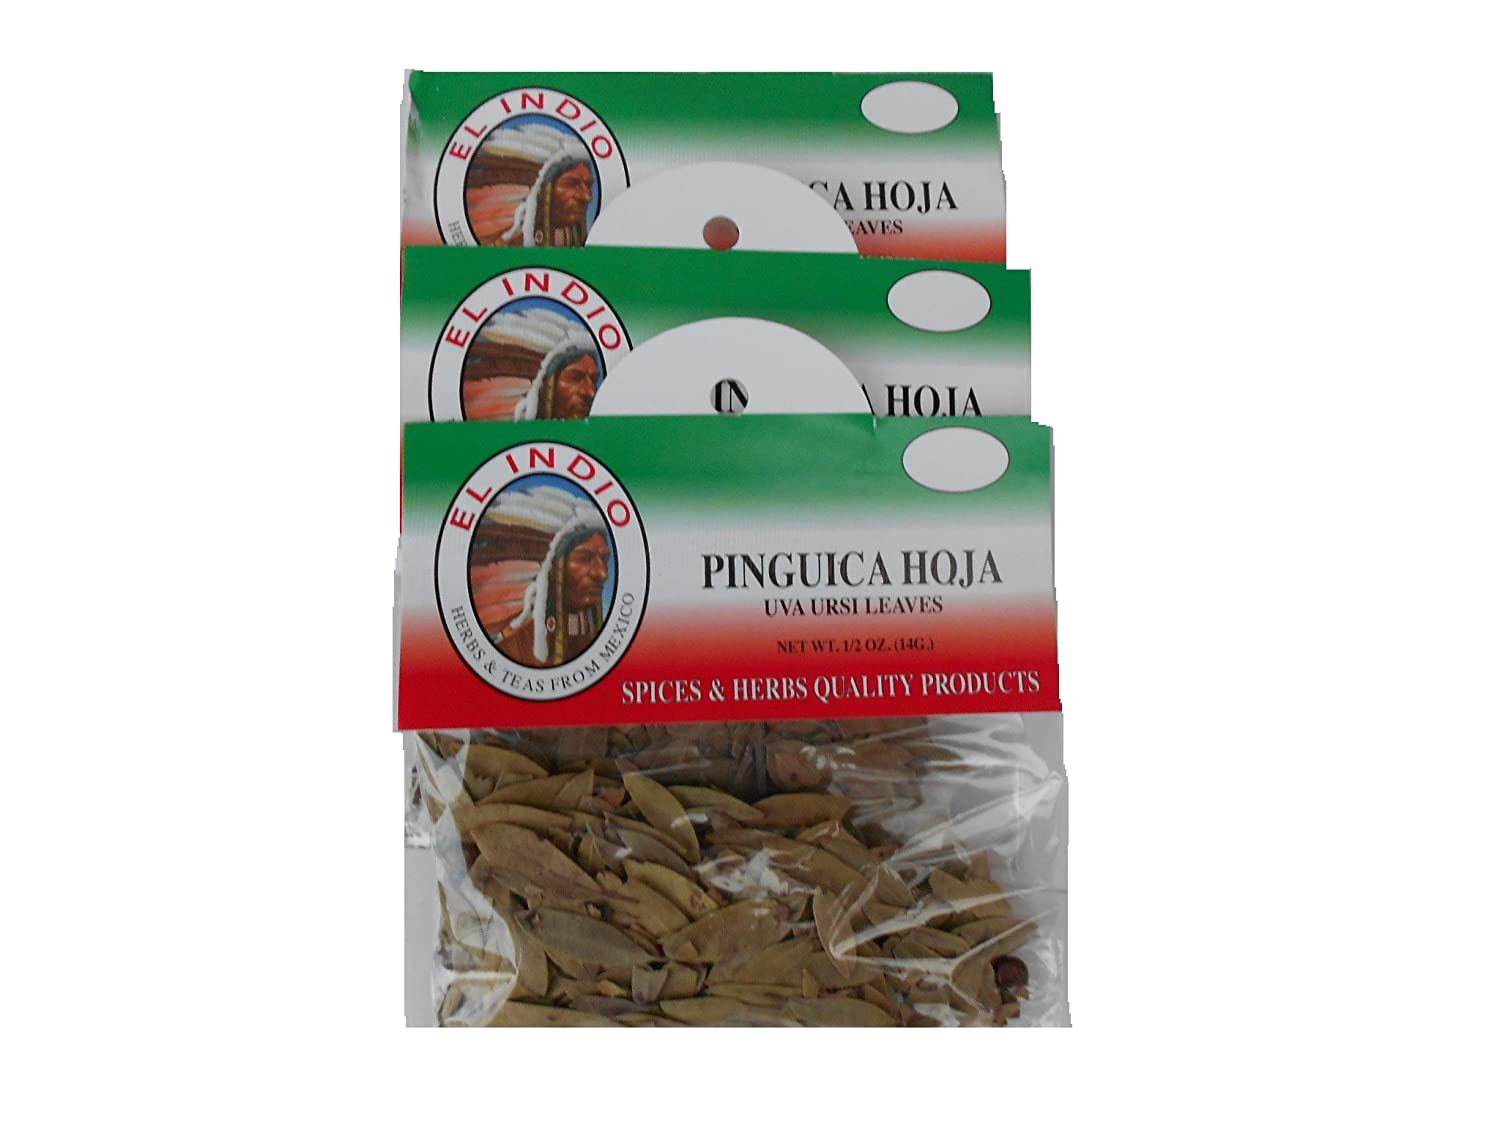 Amazon.com : Pinguica Hoja / Uva Ursi Leaves Net Wt 1/2oz (14gr) set-3 : Grocery & Gourmet Food